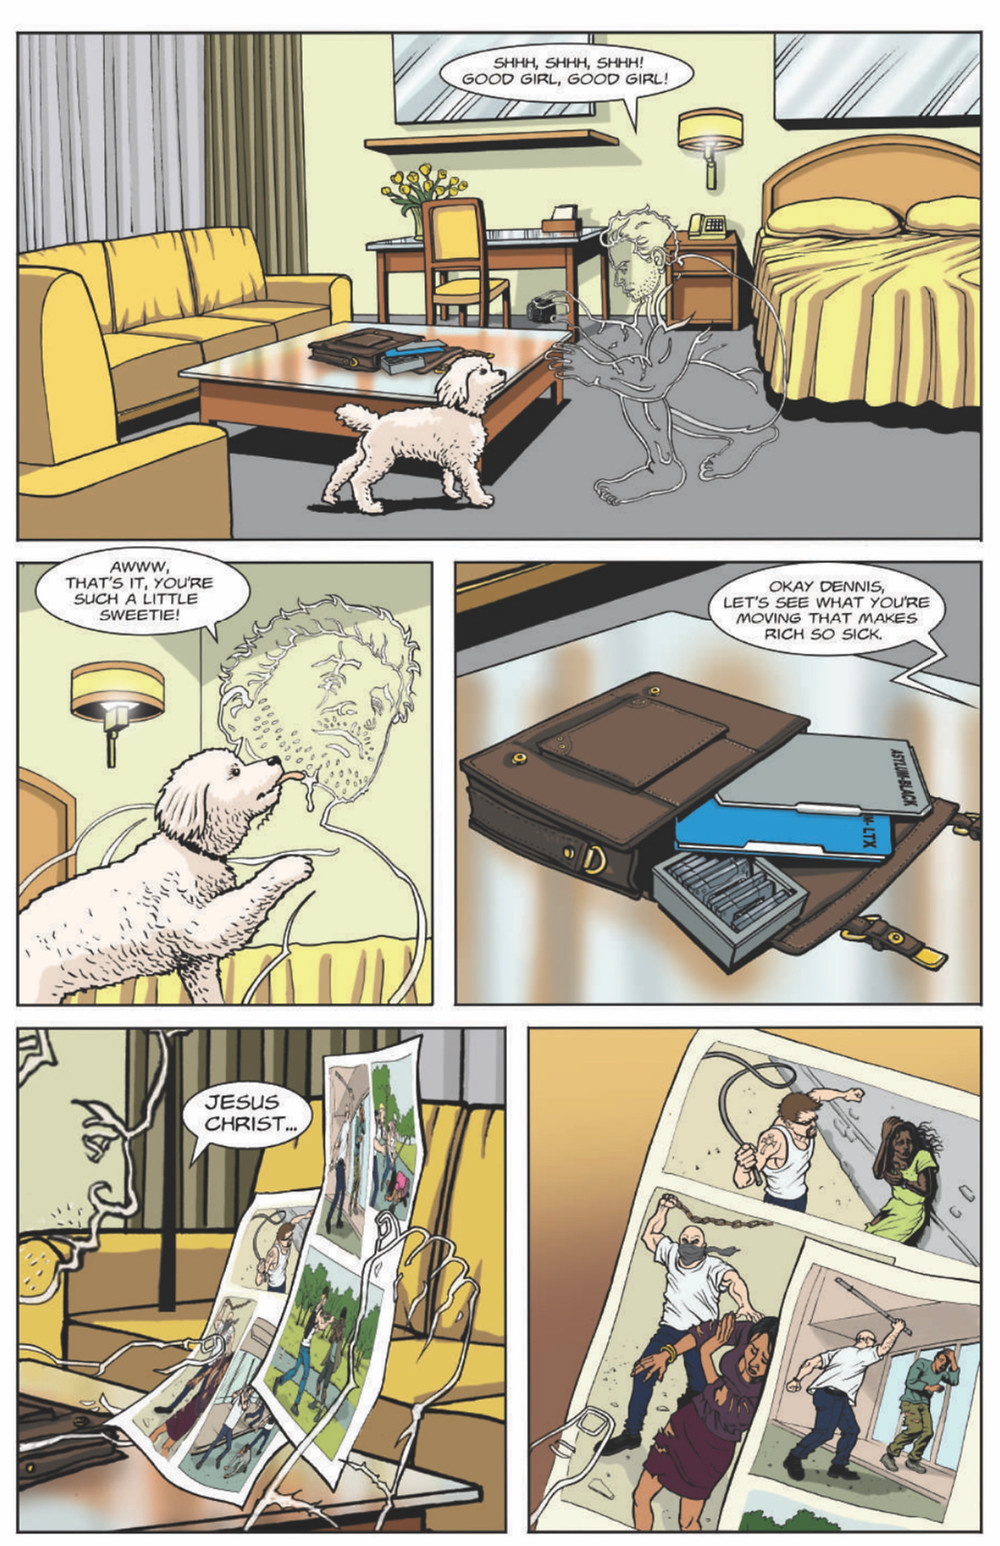 The Naked Eye, issue #1, page 5, self-published, Doring/Delvecchio